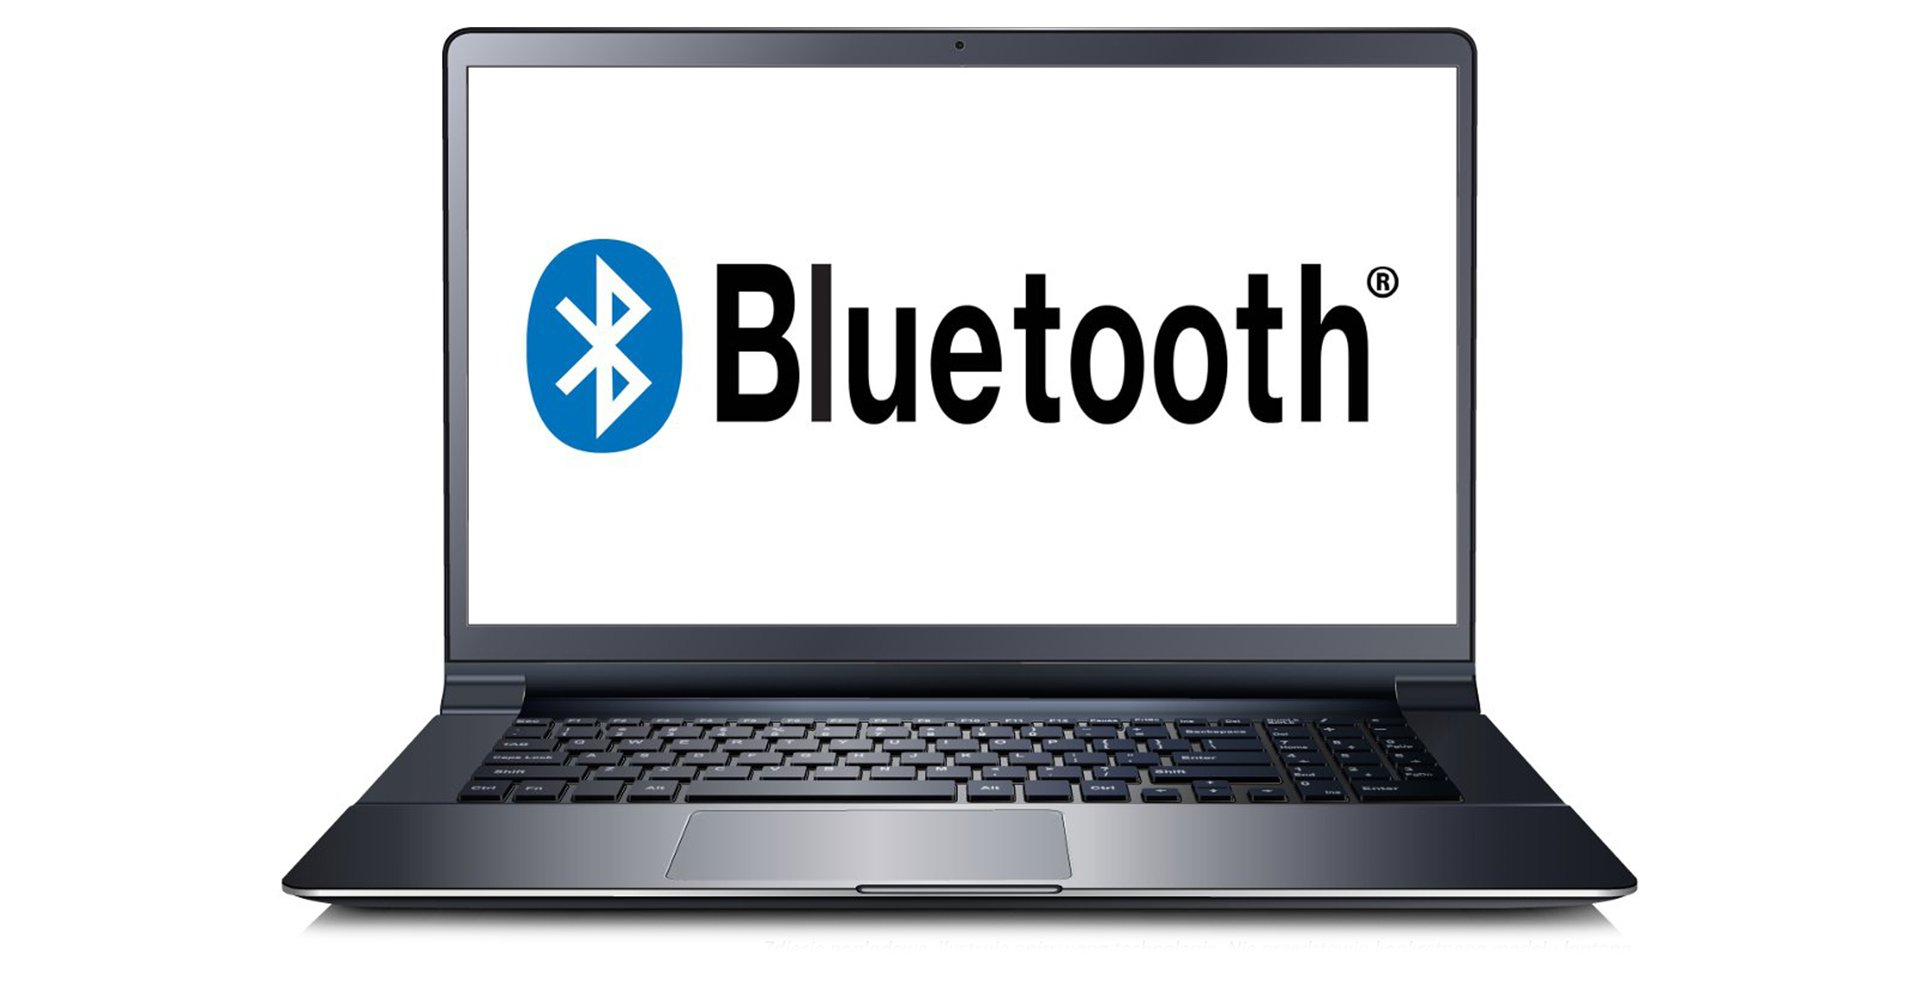 Lenovo V510-15 Win10P PL (80WQ0249PB)                             Bluetooth